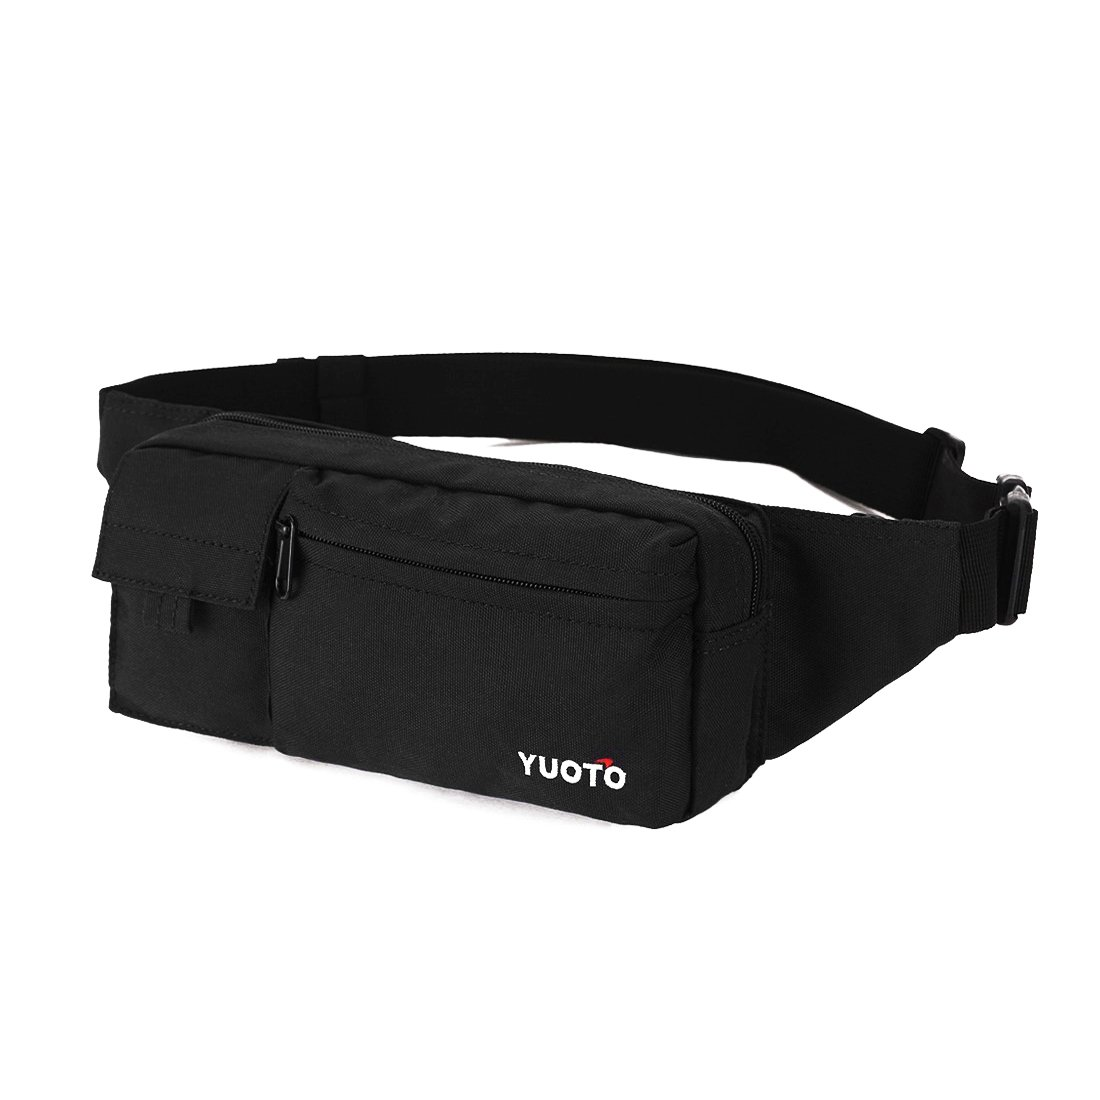 YUOTO Fanny Pack 4 Pockets Travel Workout Cycling Running Waist Bag Hip Belt Bum Bag Men & Women fit iPhone Plus black